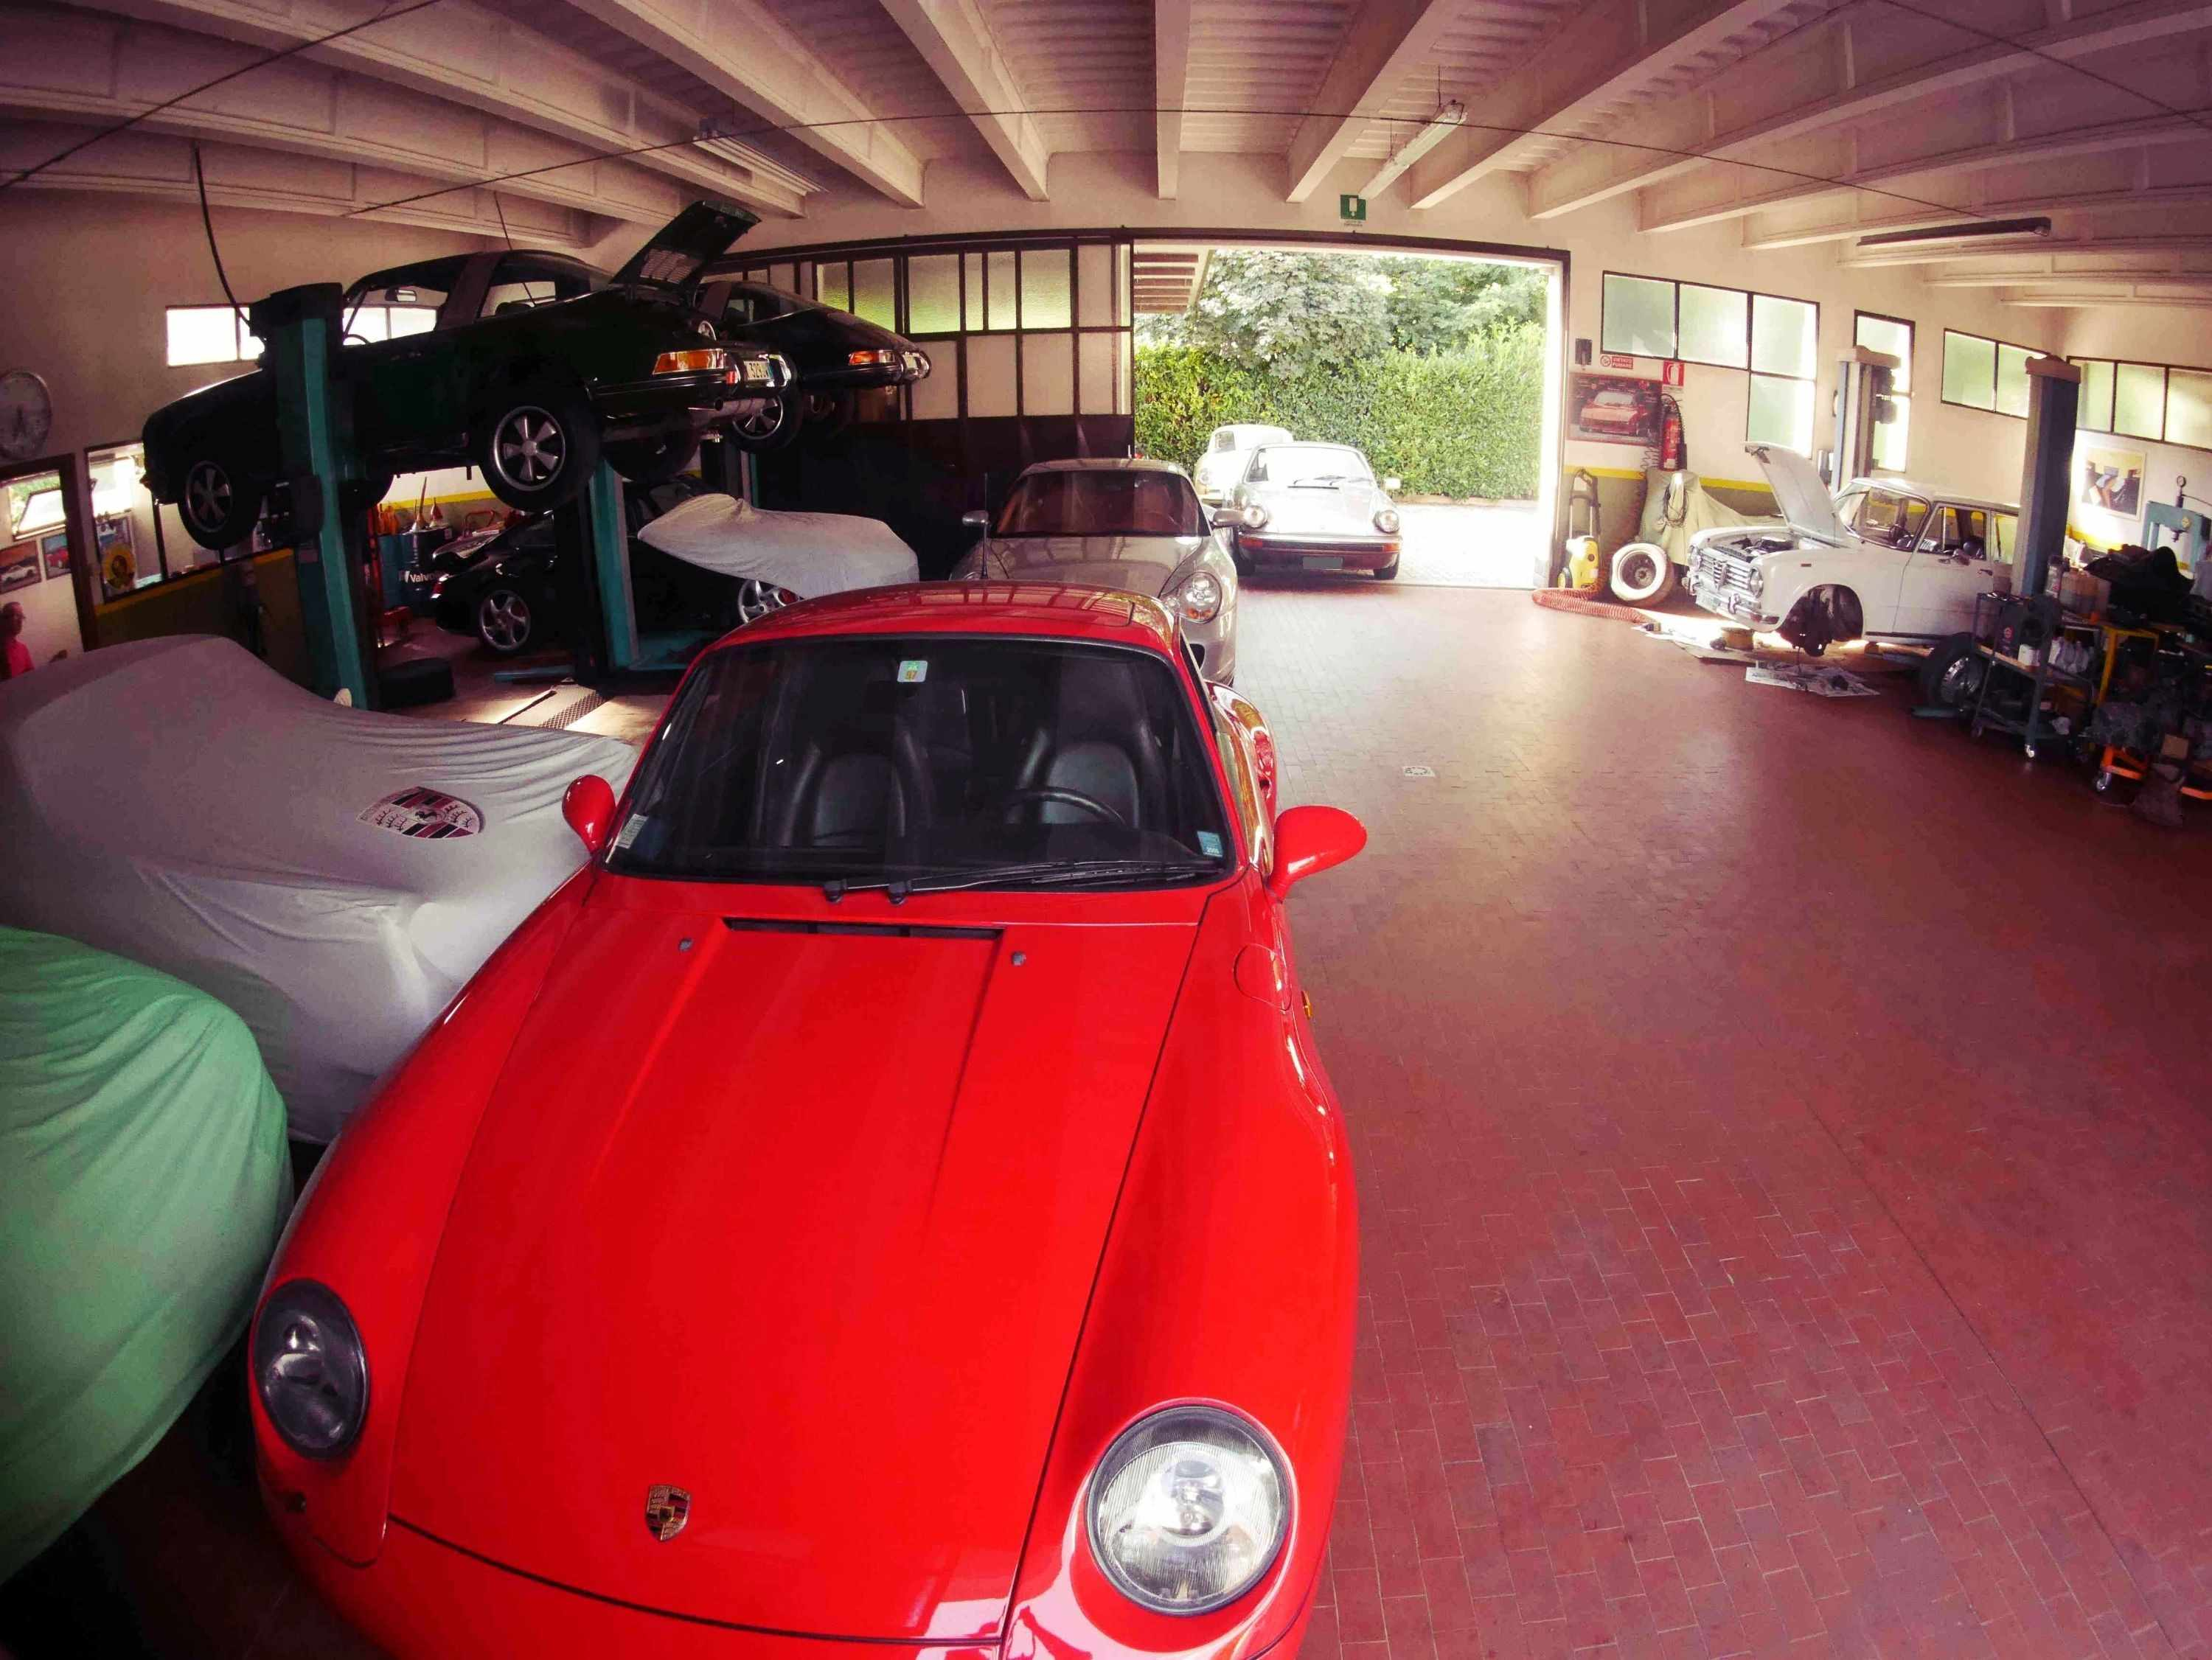 Mario 39 s garage only one alfa romeo here global dimension - Garage alfa romeo orleans ...